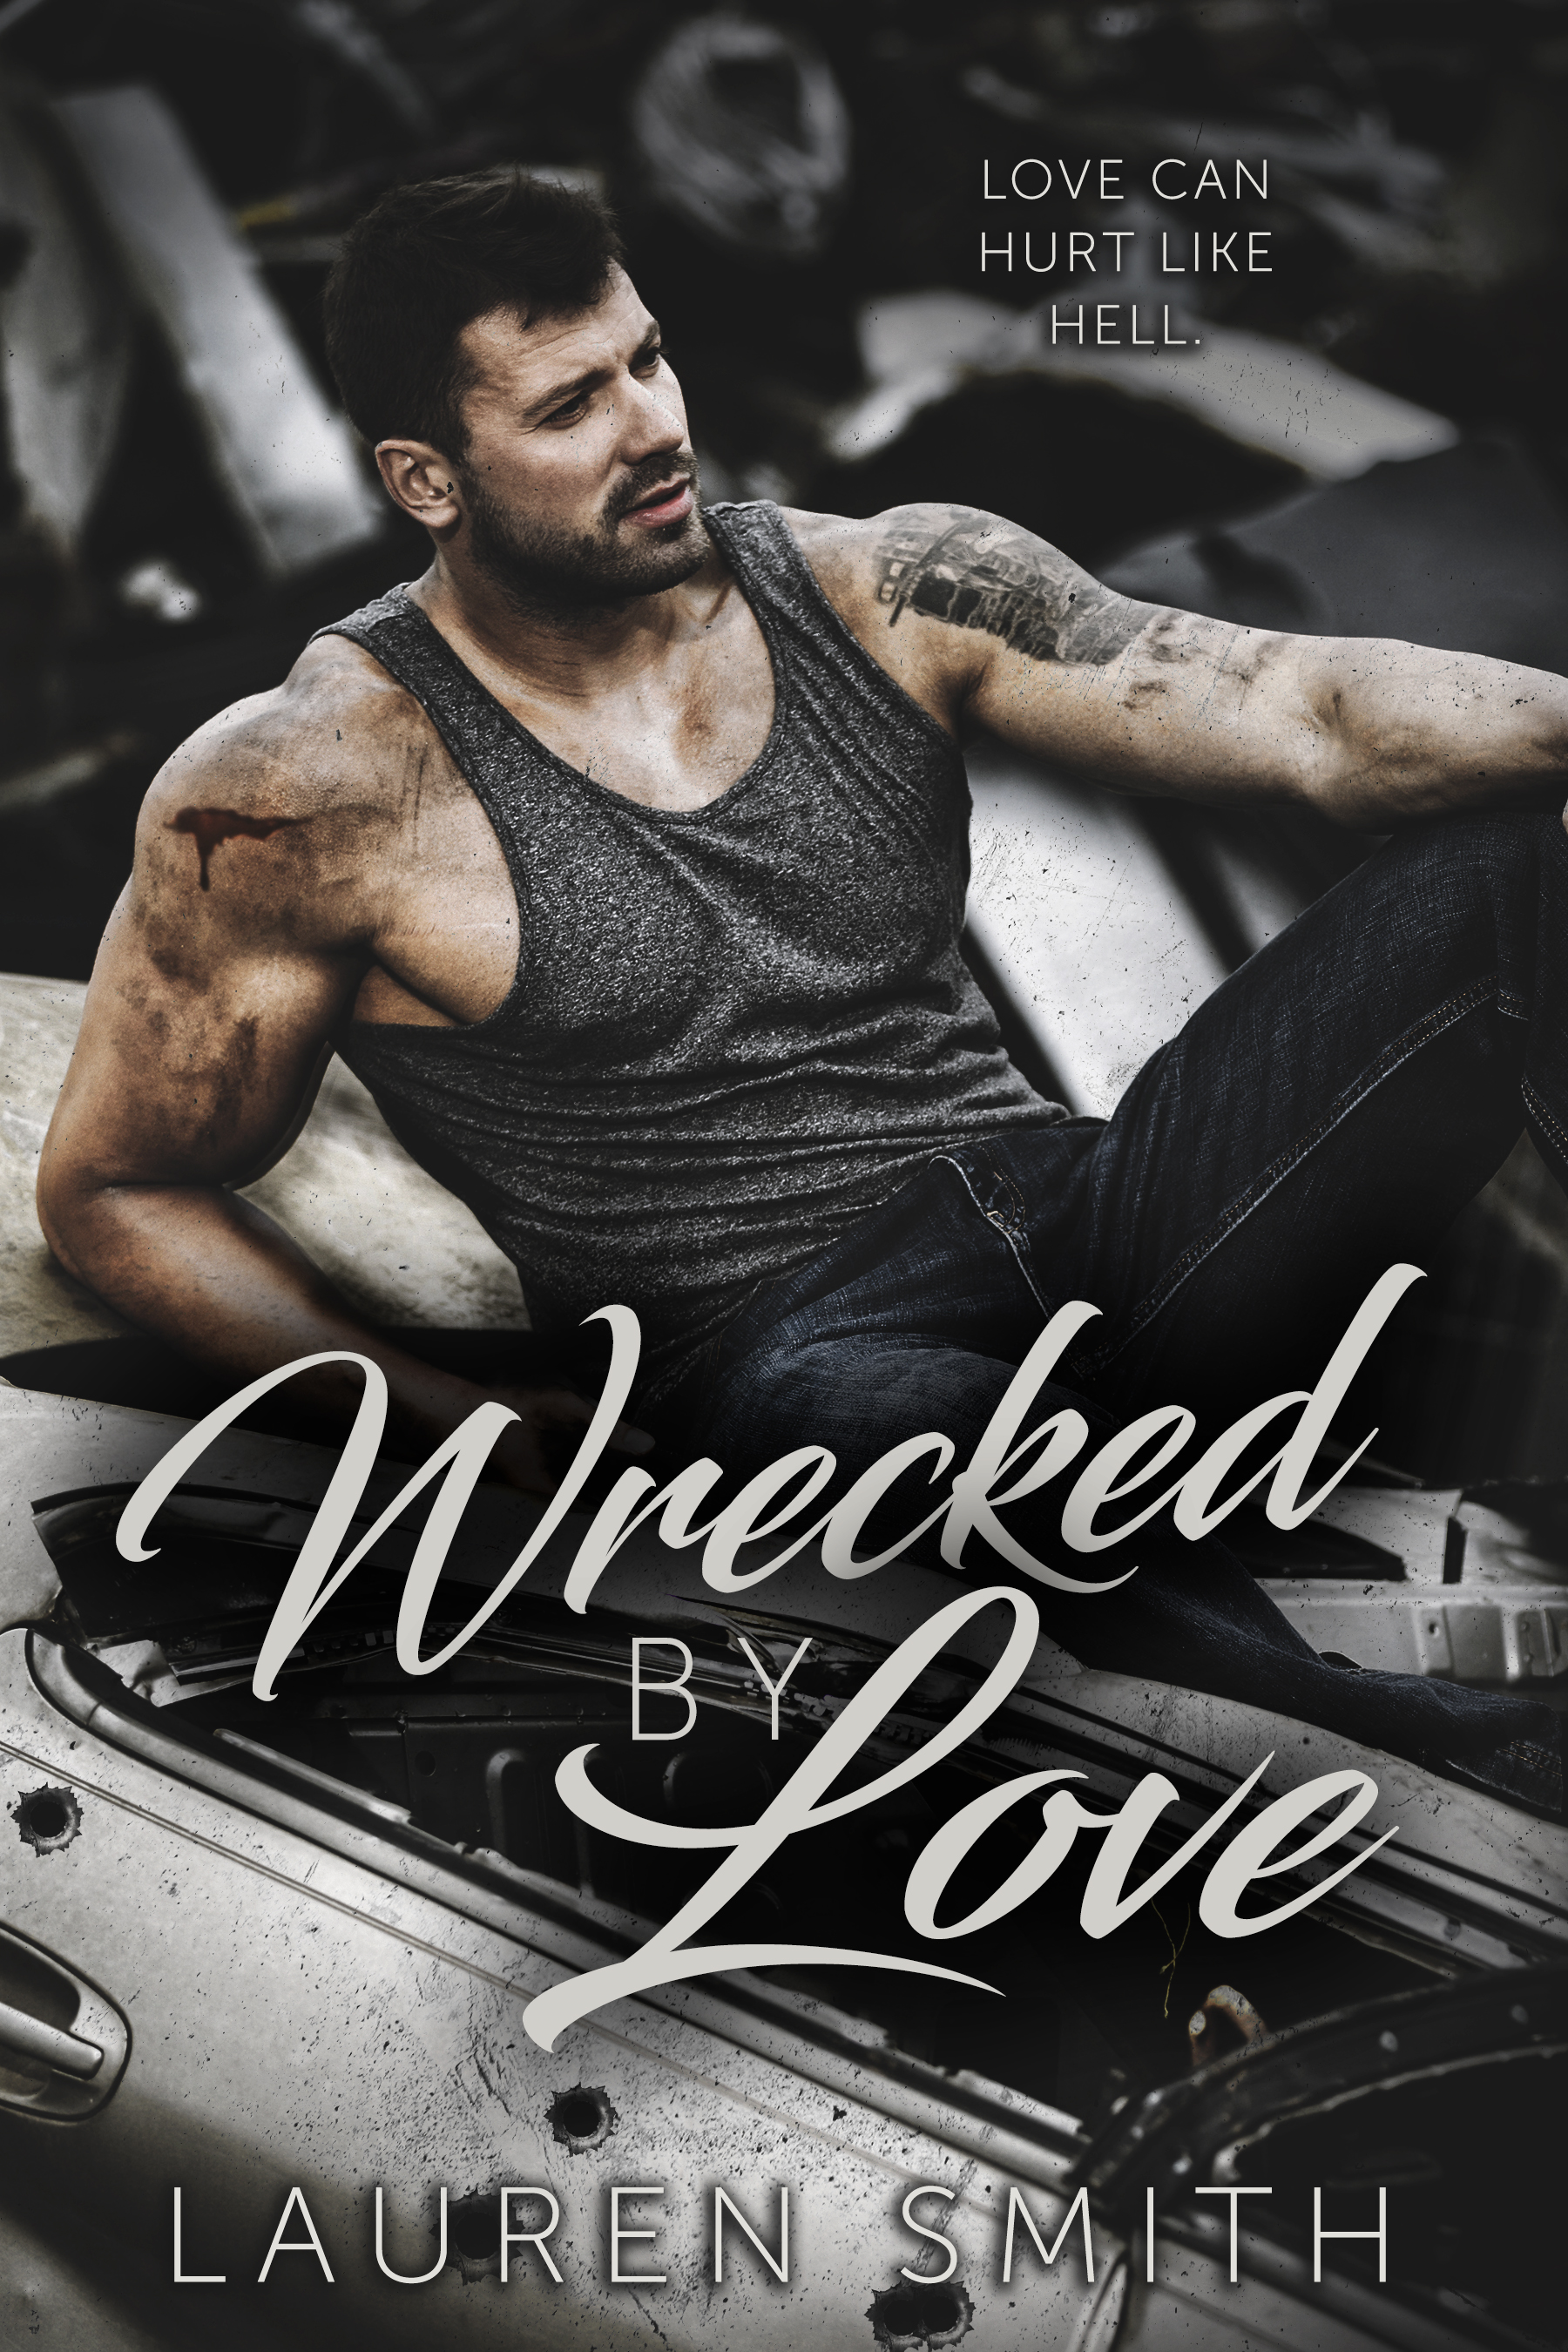 Wrecked By Love by Lauren Smith